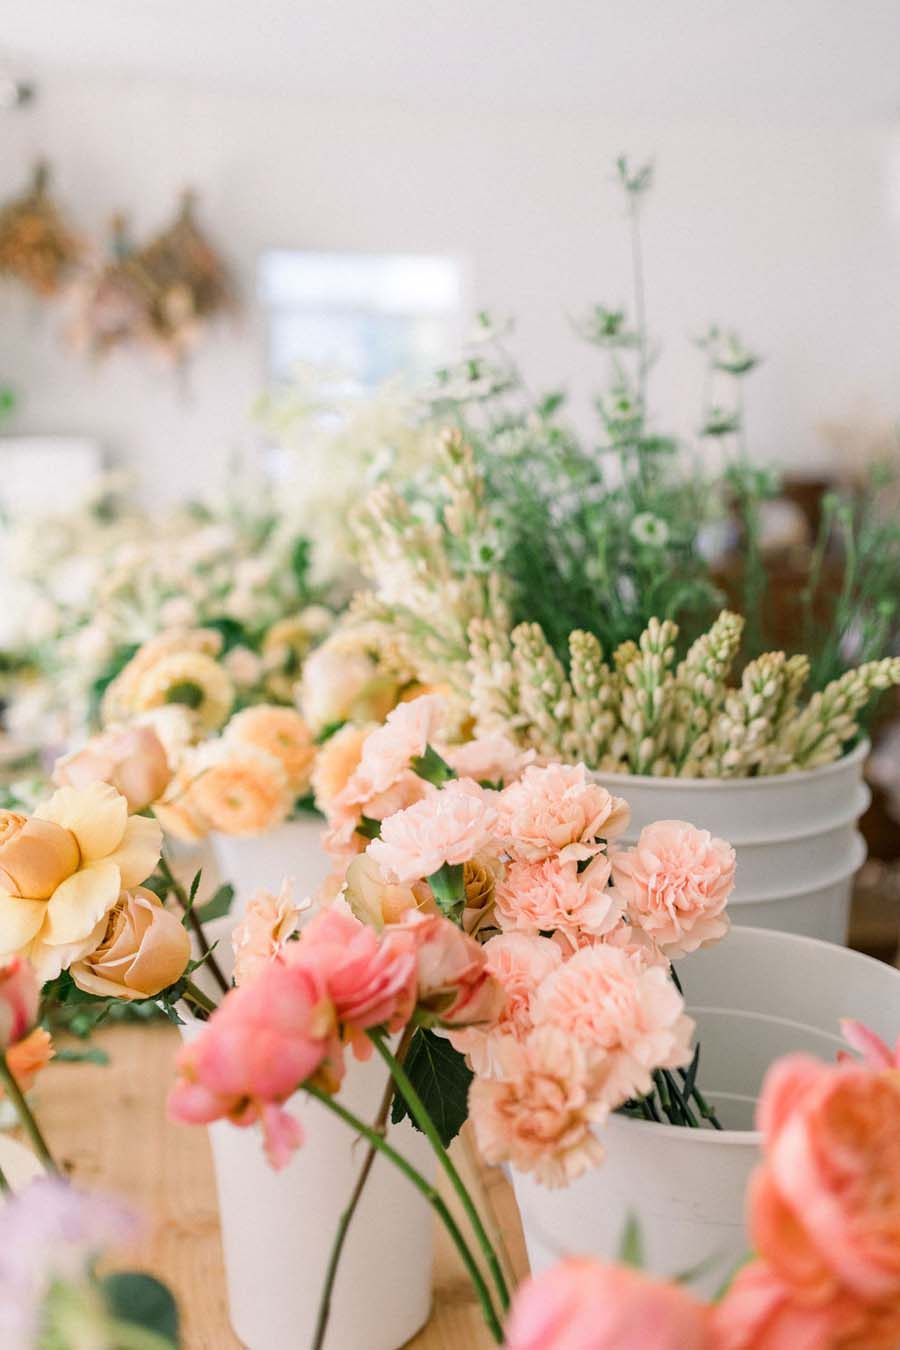 nectarandbloomfloral.com | Nectar and Bloom Floral Design | Pine and Sea Photography | San Diego Wedding and Event Florist  | Mentor Sessions for Florists  (3).jpg